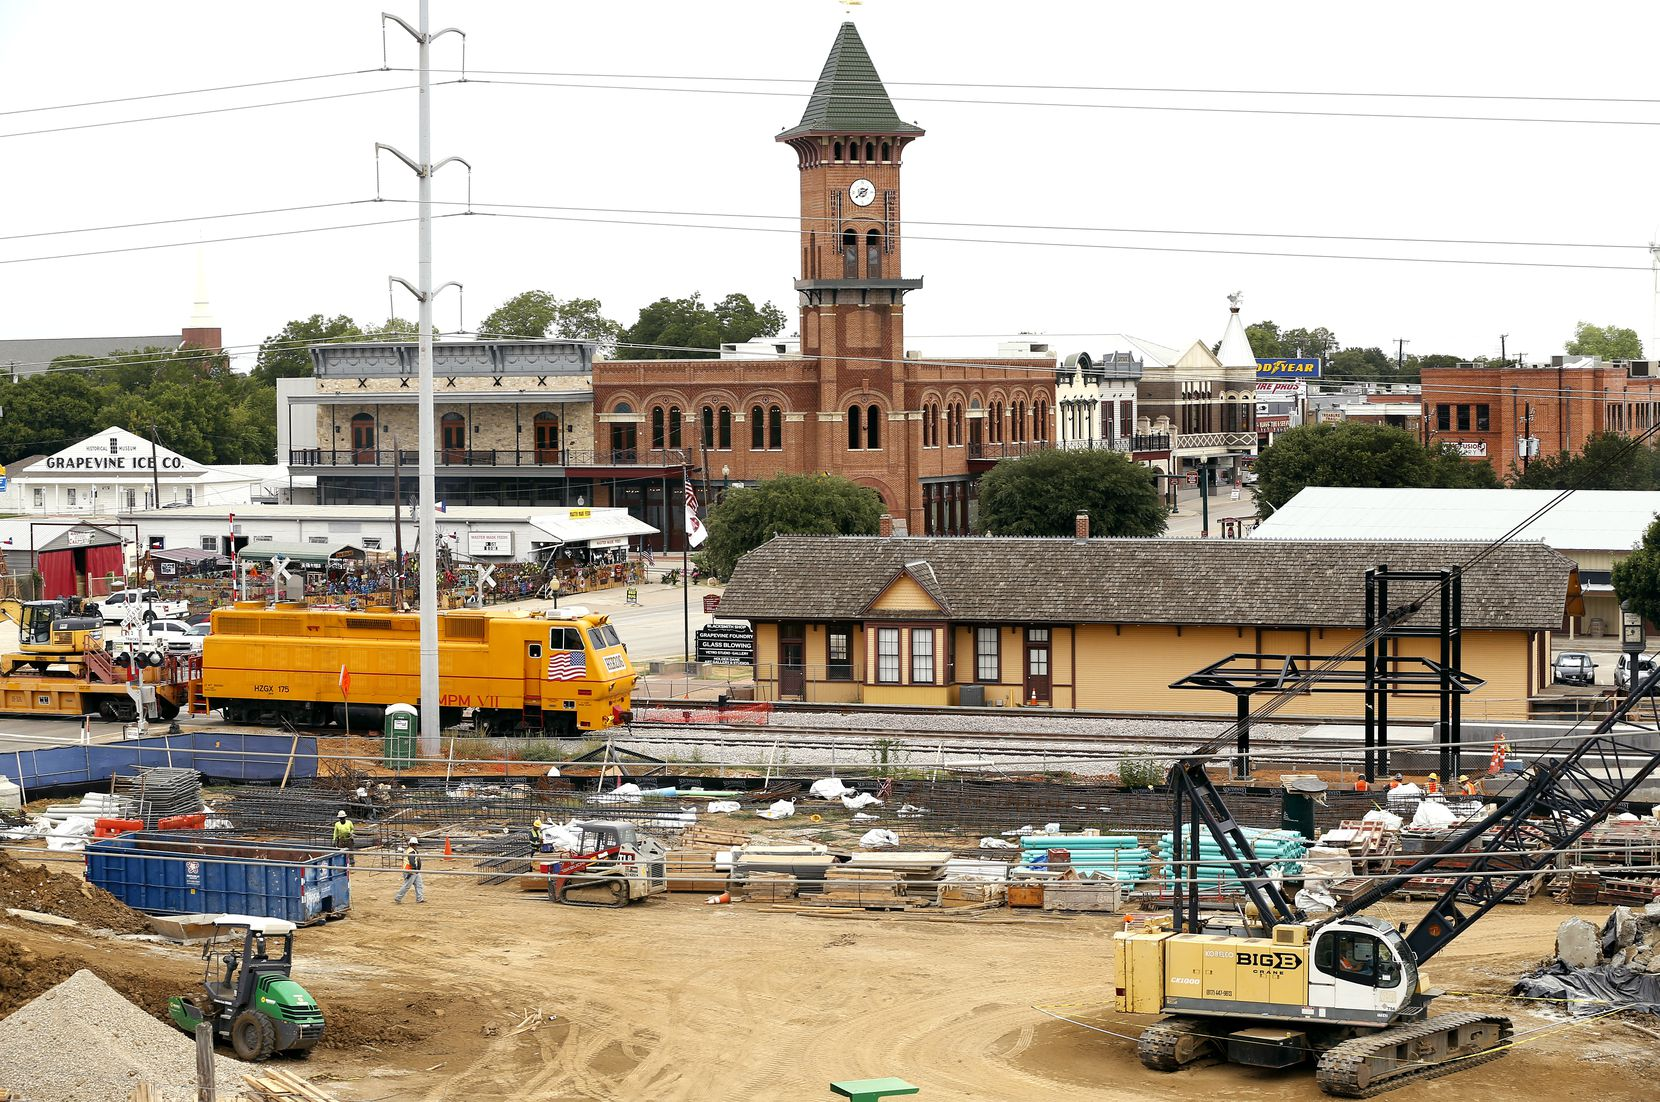 A railroad maintenance train passes the historic Grapevine train depot in downtown Grapevine.   Development around the TexRail commuter line connecting downtown Fort Worth with Grapevine and DFW Airport includes the 121-room Hotel Vin and 552-space parking garage.